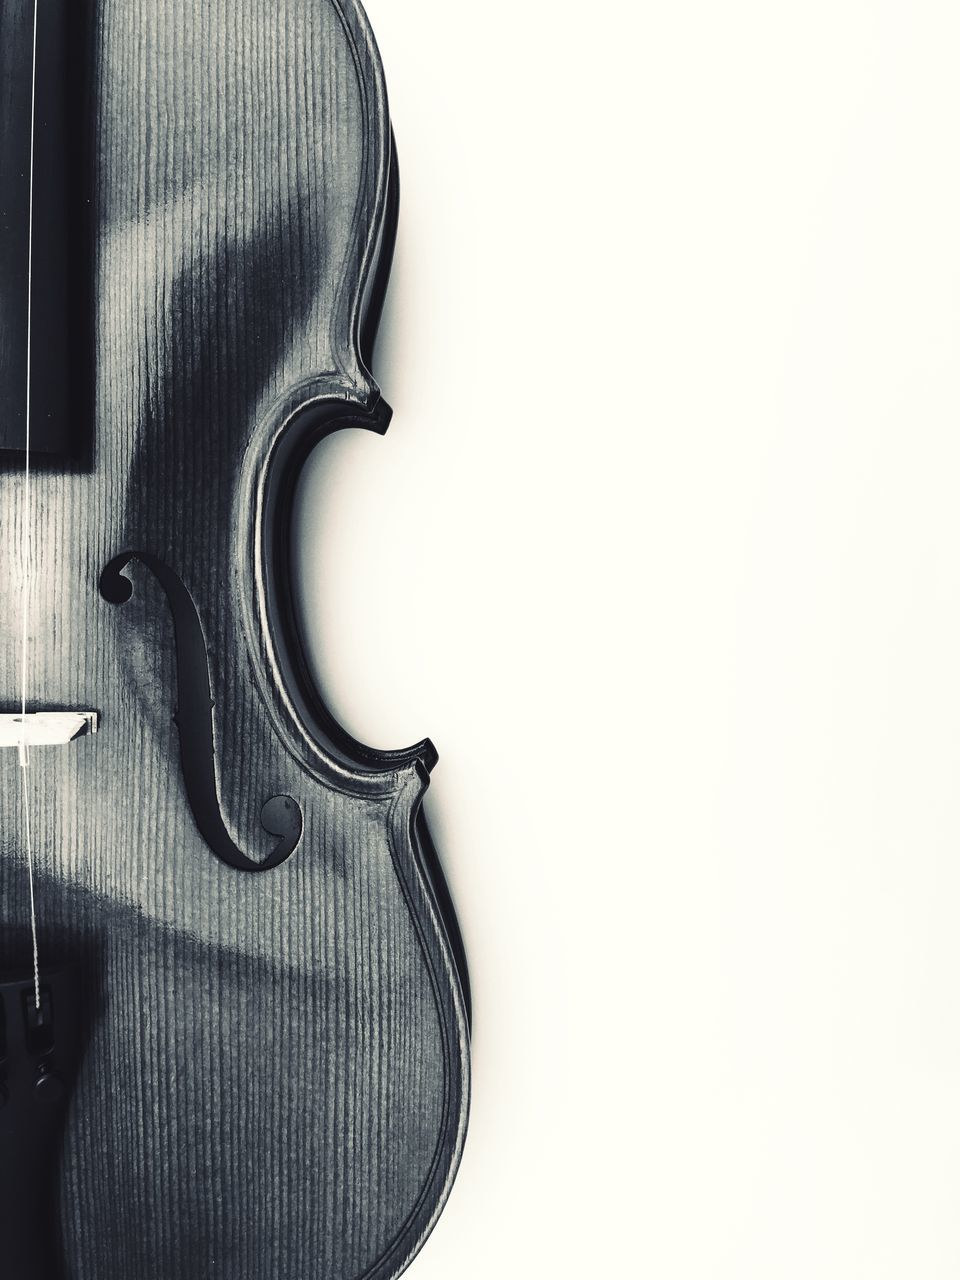 violin, white background, music, arts culture and entertainment, musical instrument, studio shot, musical instrument string, indoors, no people, close-up, classical music, day